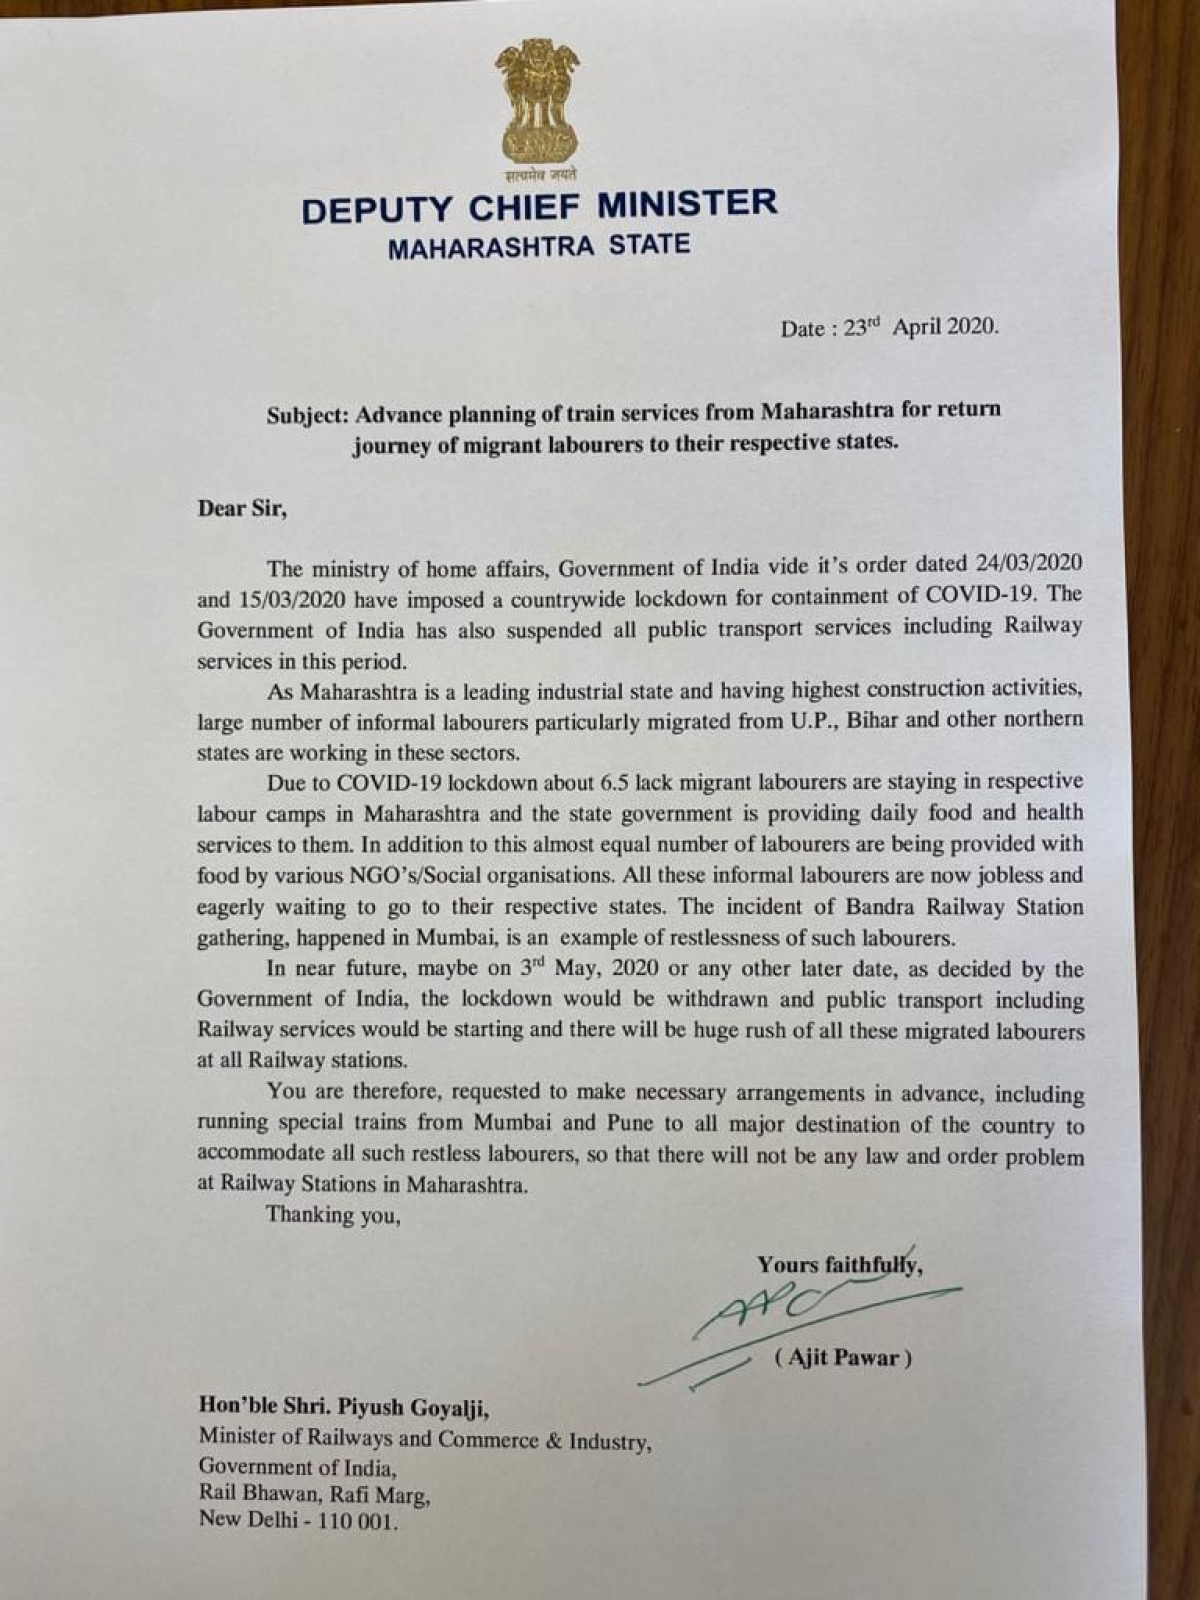 Make advanced plans to run trains from Mumbai and Pune for stranded migrant labourers: Maha DCM Ajit Pawar to Piyush Goyal